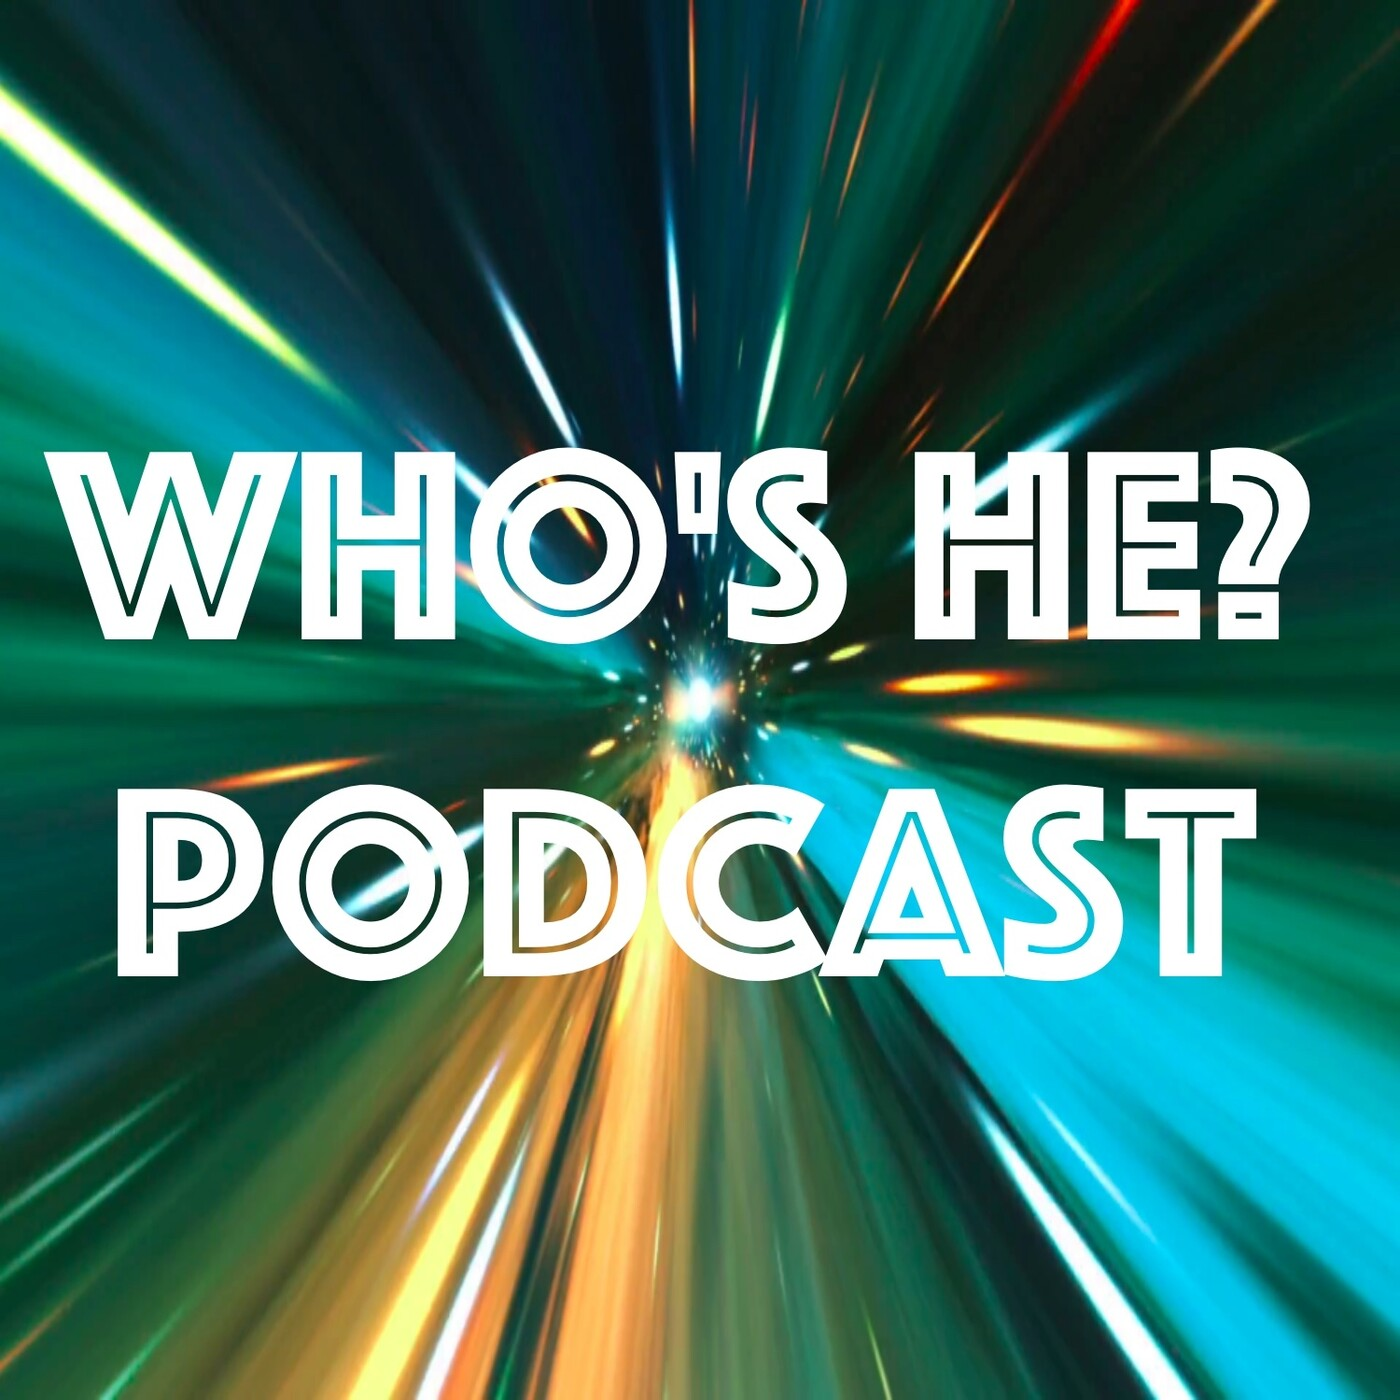 Who's He? Podcast #272 Every legend tells of conquest and liberty